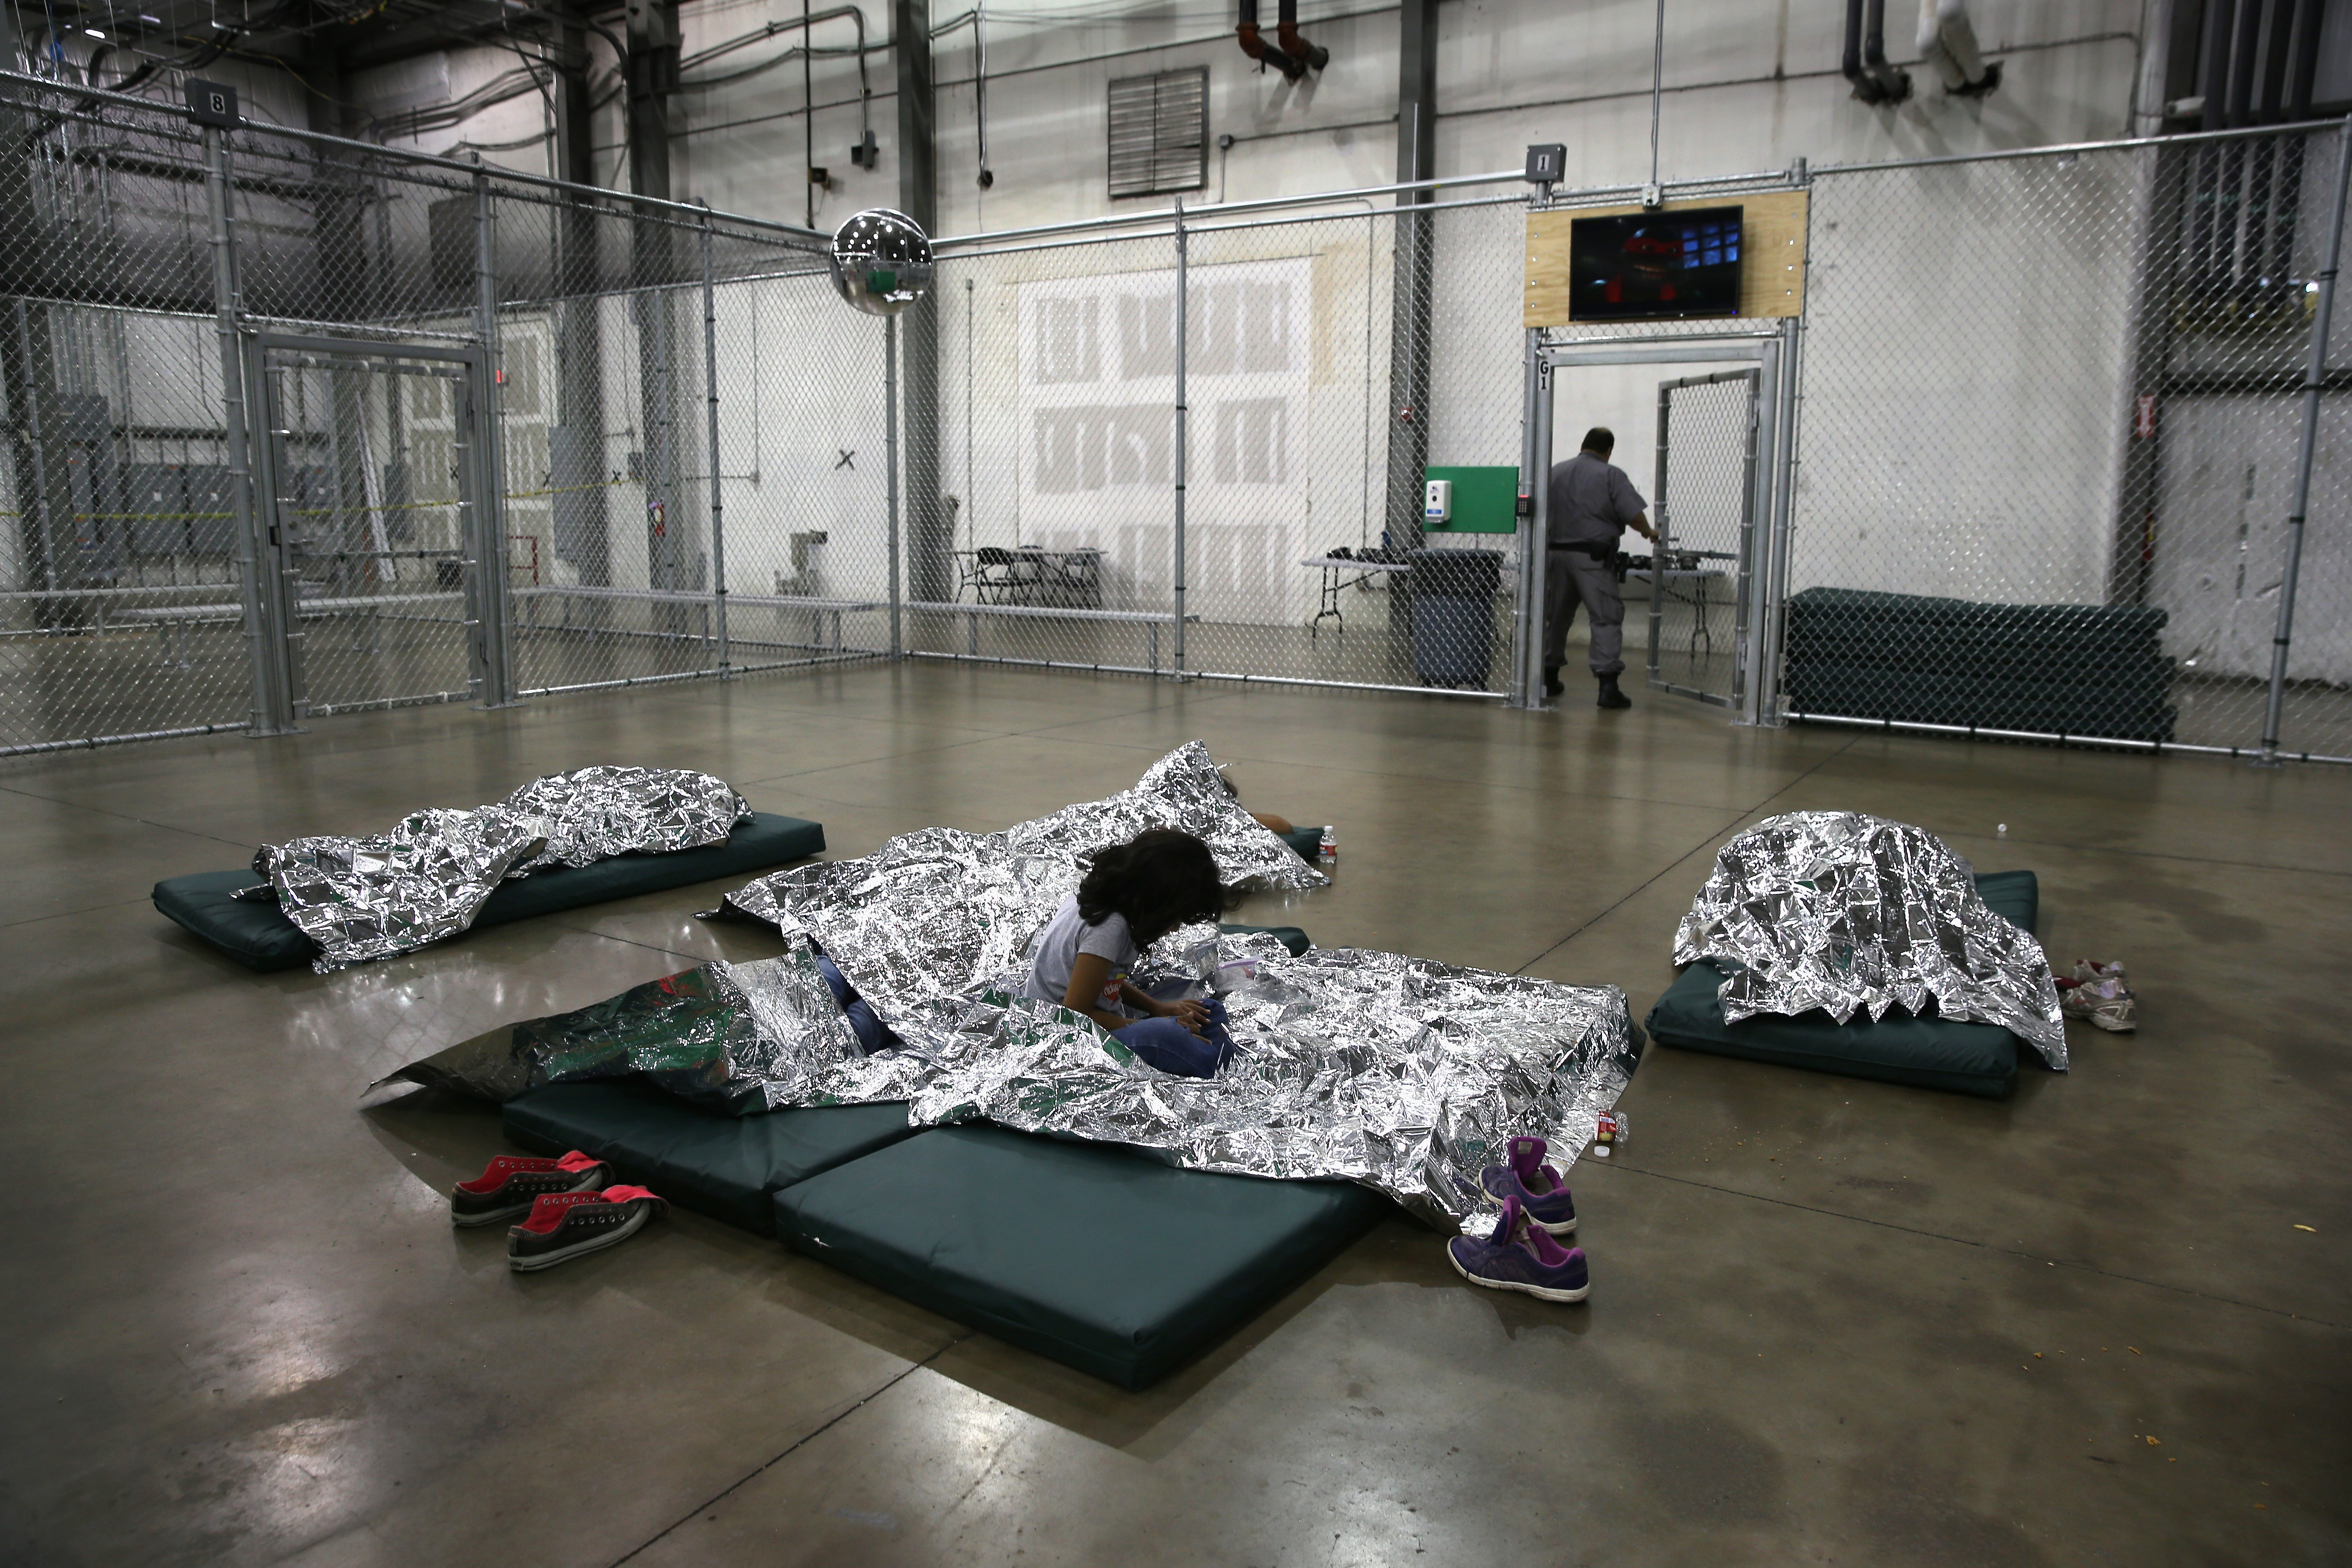 A girl from Central America rests on thermal blankets at a detention facility run by the U.S. Border Patrol on September 8, 2014 in McAllen, Texas. John Moore/Getty Images